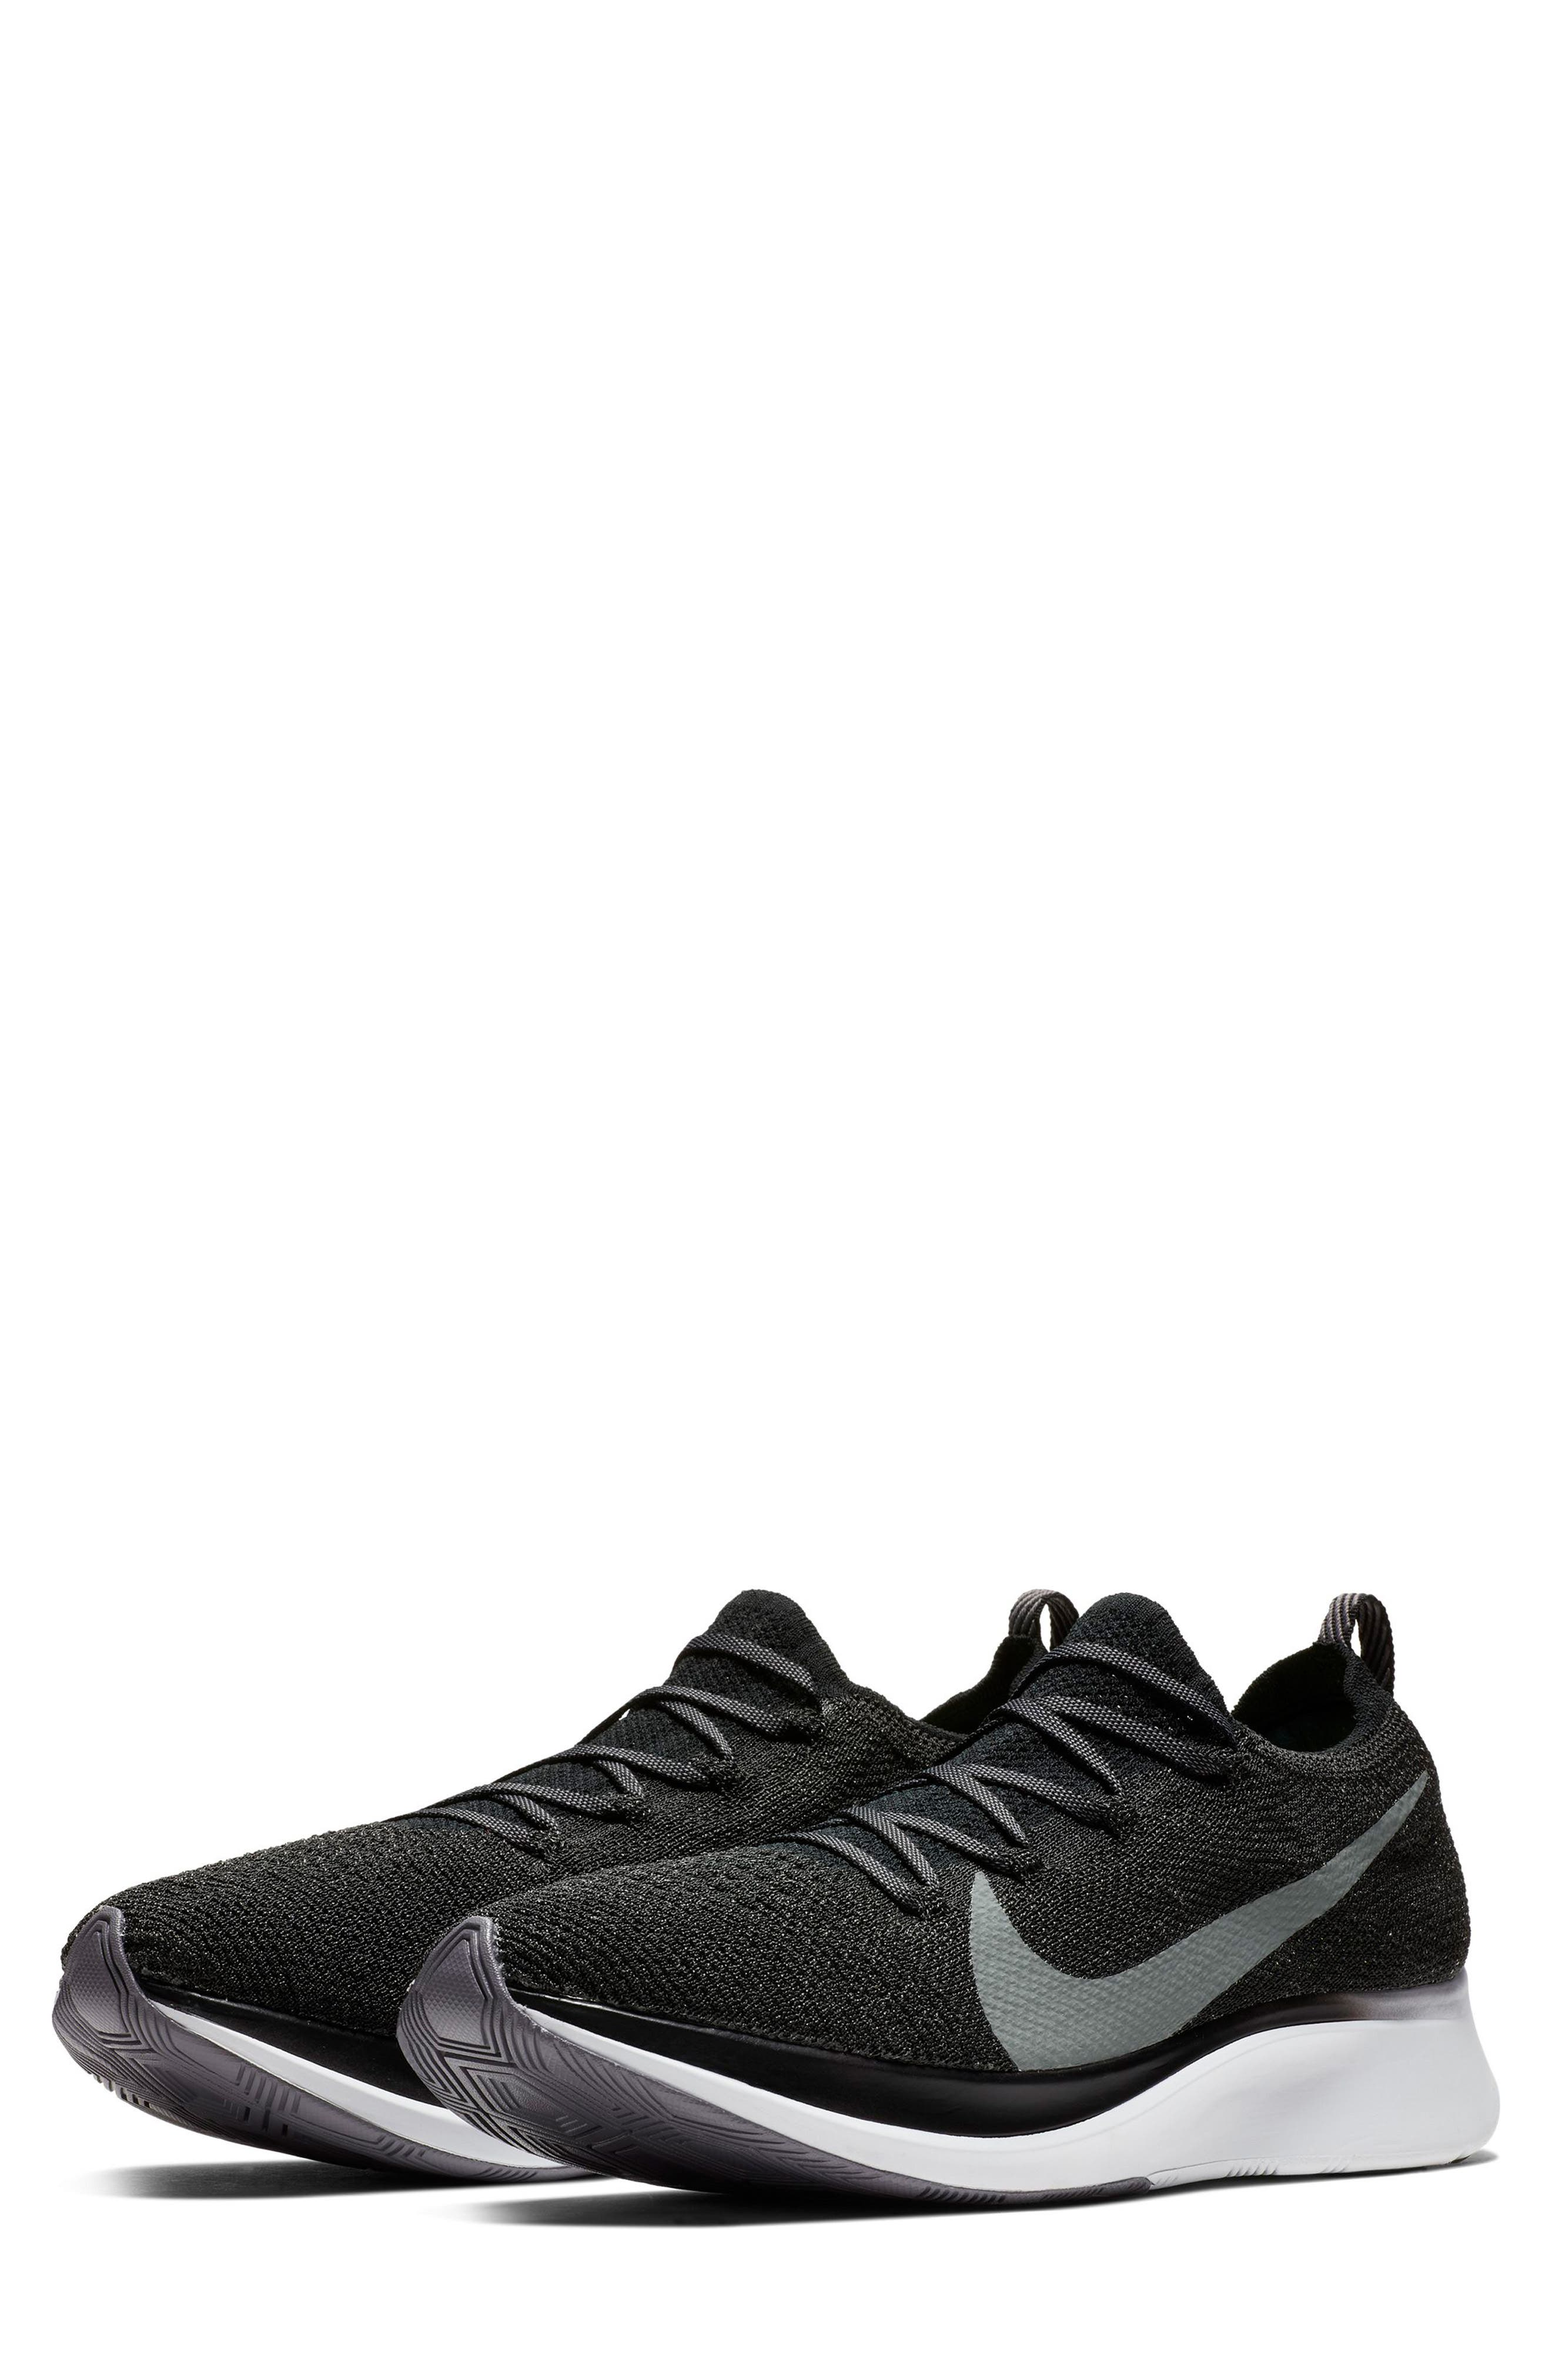 797a978413 ... coupon for nike zoom fly flyknit running shoe men 01299 01d80